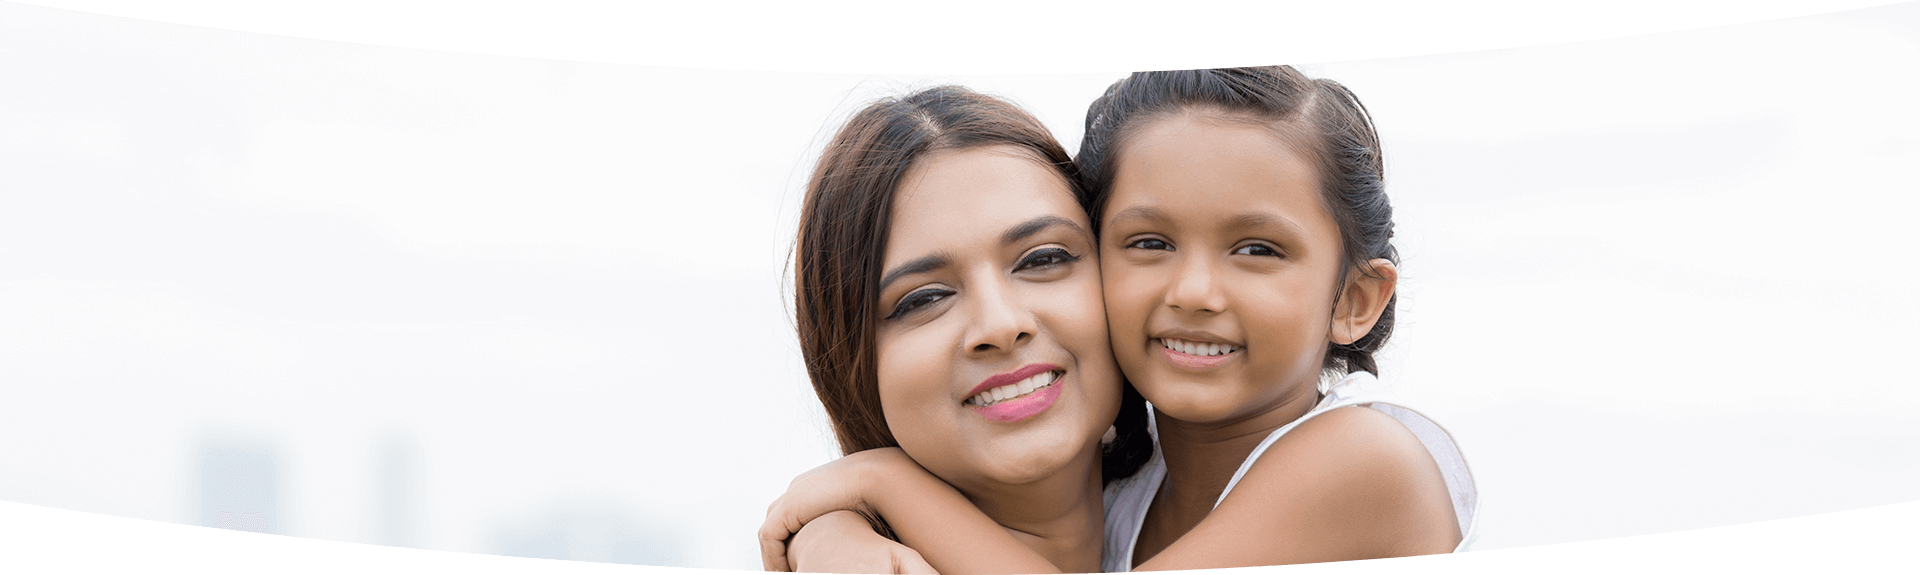 Dentist Calgary - Mother and daughter 1